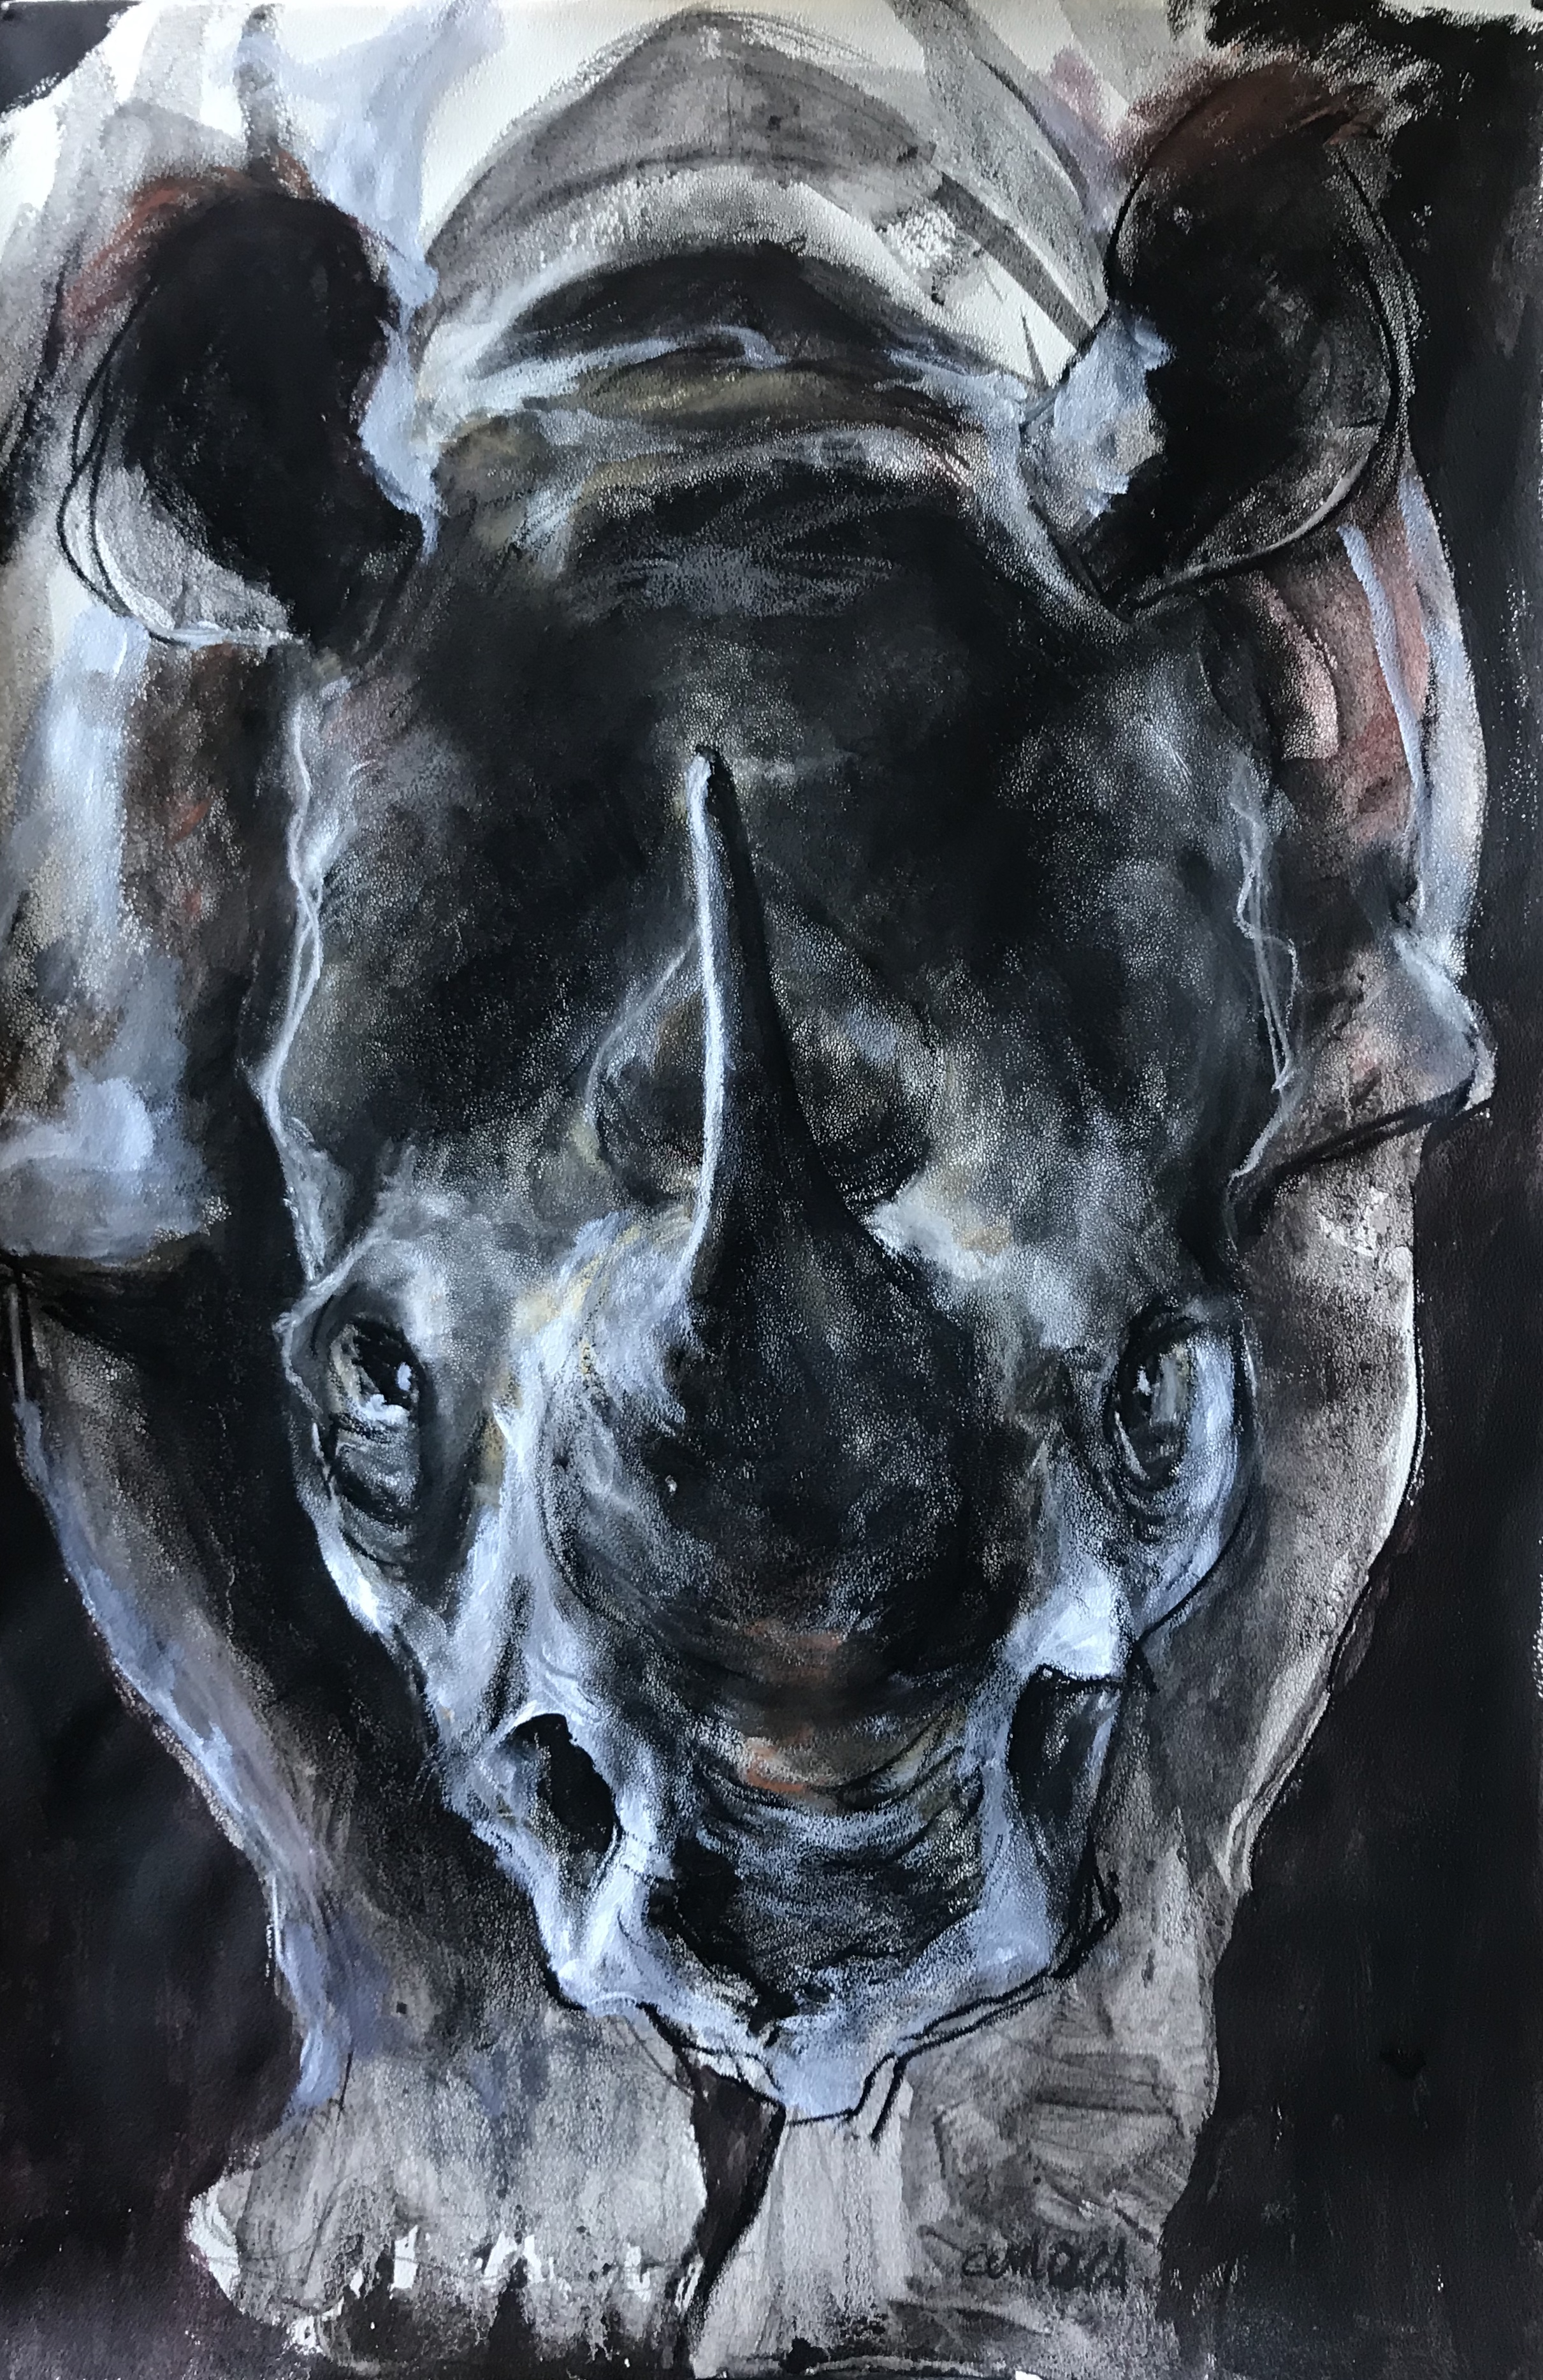 257-Rhino/mixed media 50x75cm